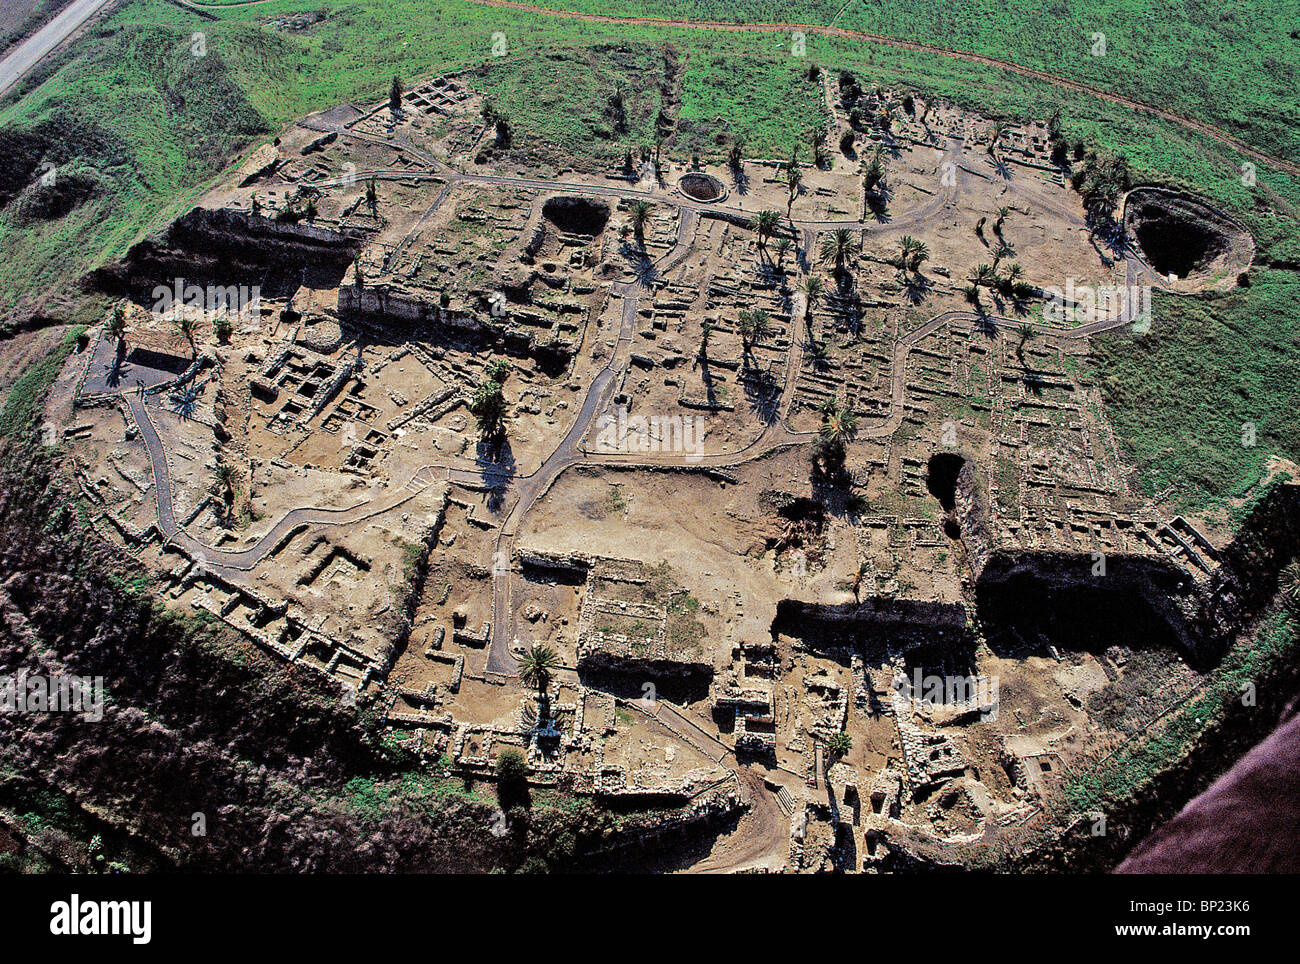 megiddo walled city strategicaly located on the route from coast to